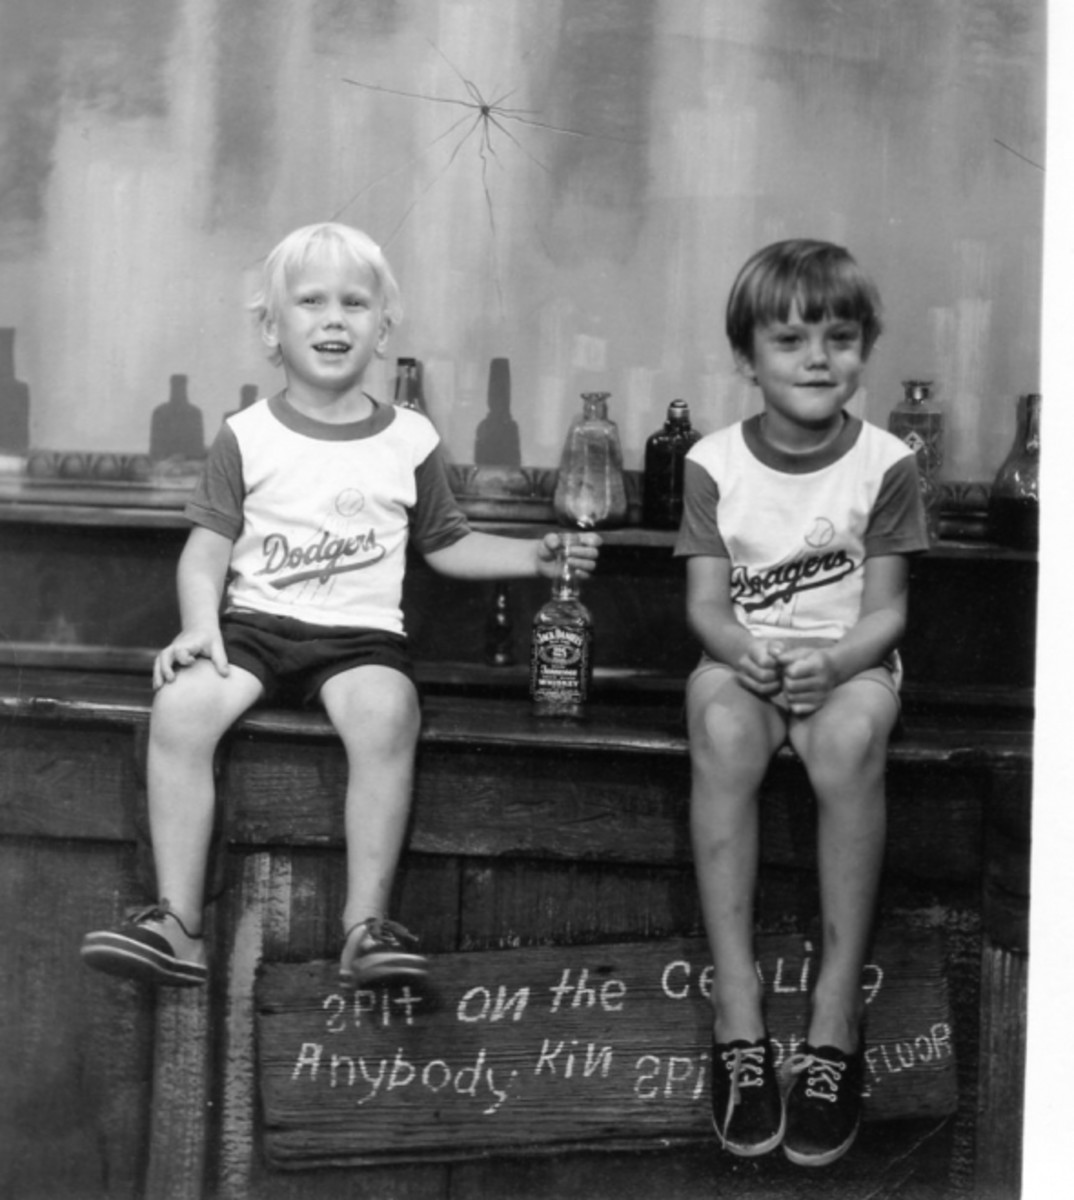 1974 - Christopher and Scott on the bar. Chris was three, Scott was five. They are my kids.